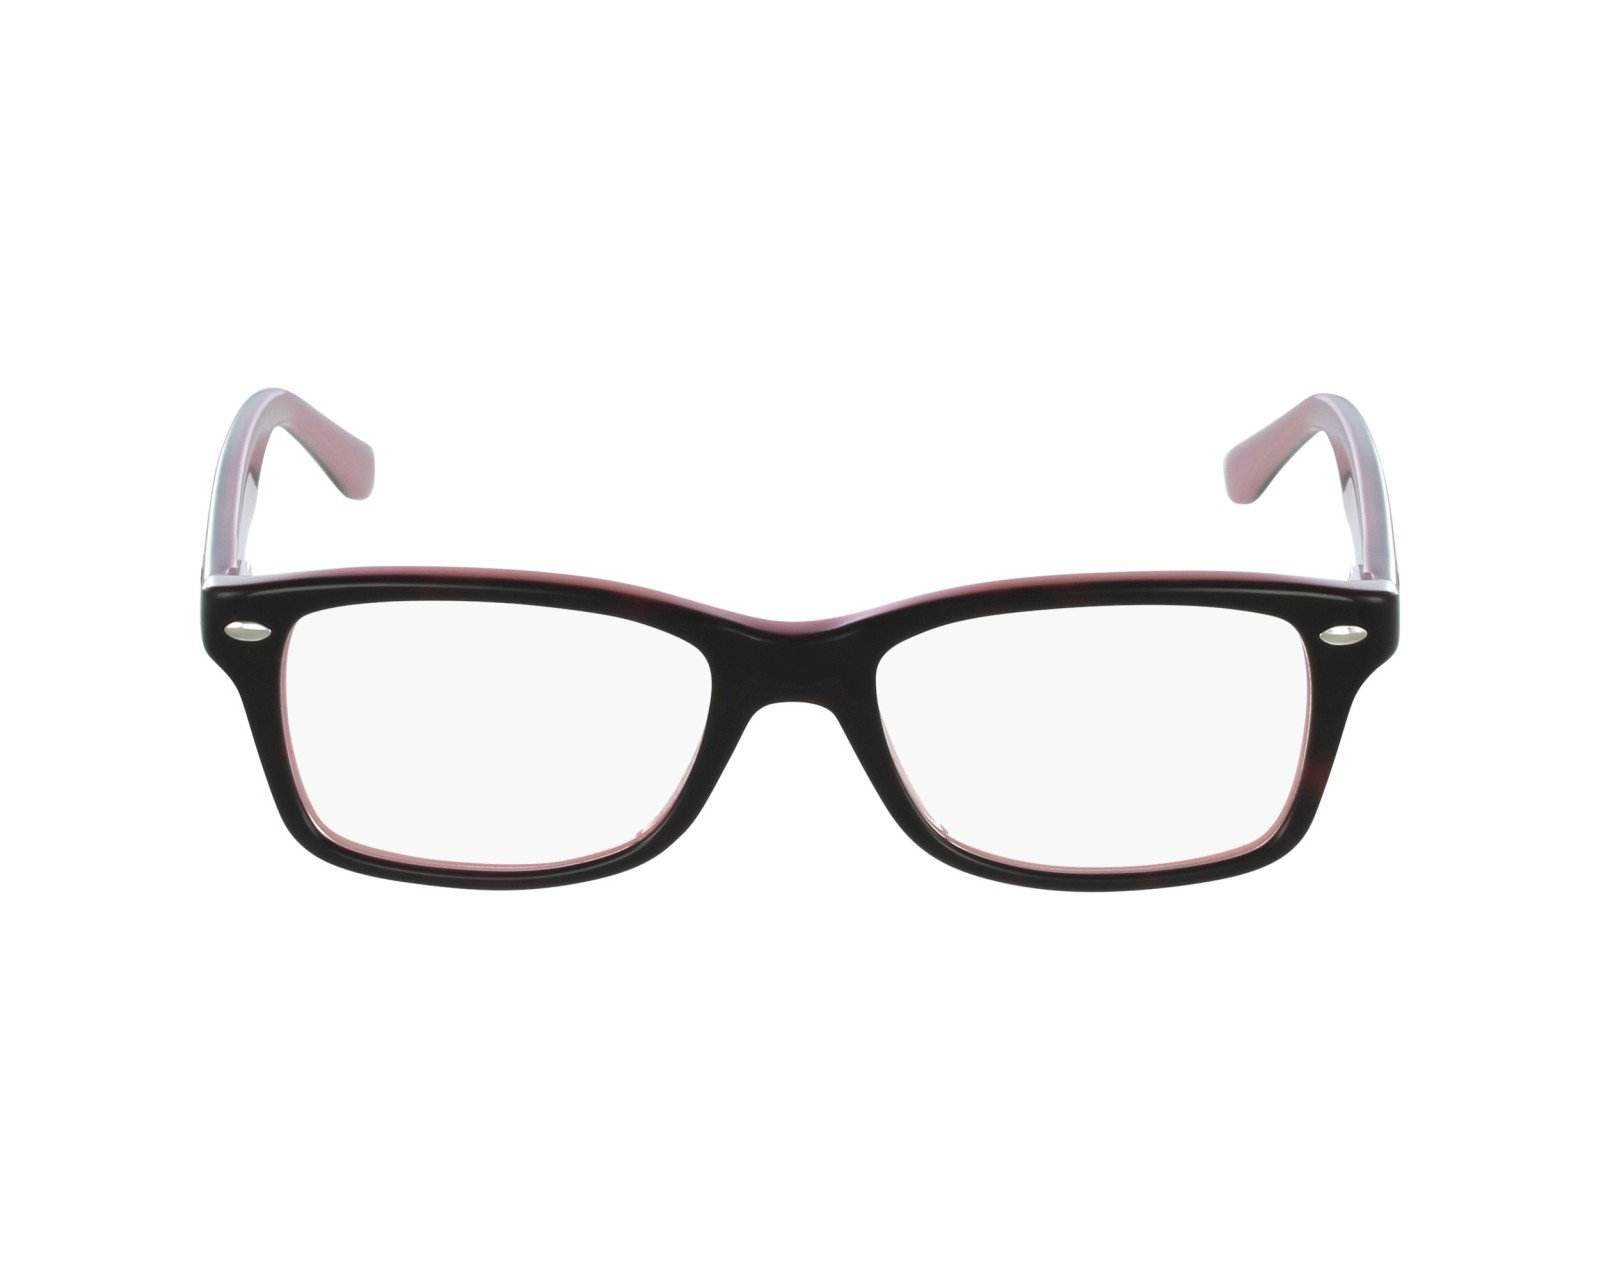 366eb3b18a6 eyeglasses Ray-Ban RY-1531 3580 48-16 Black Pink profile view